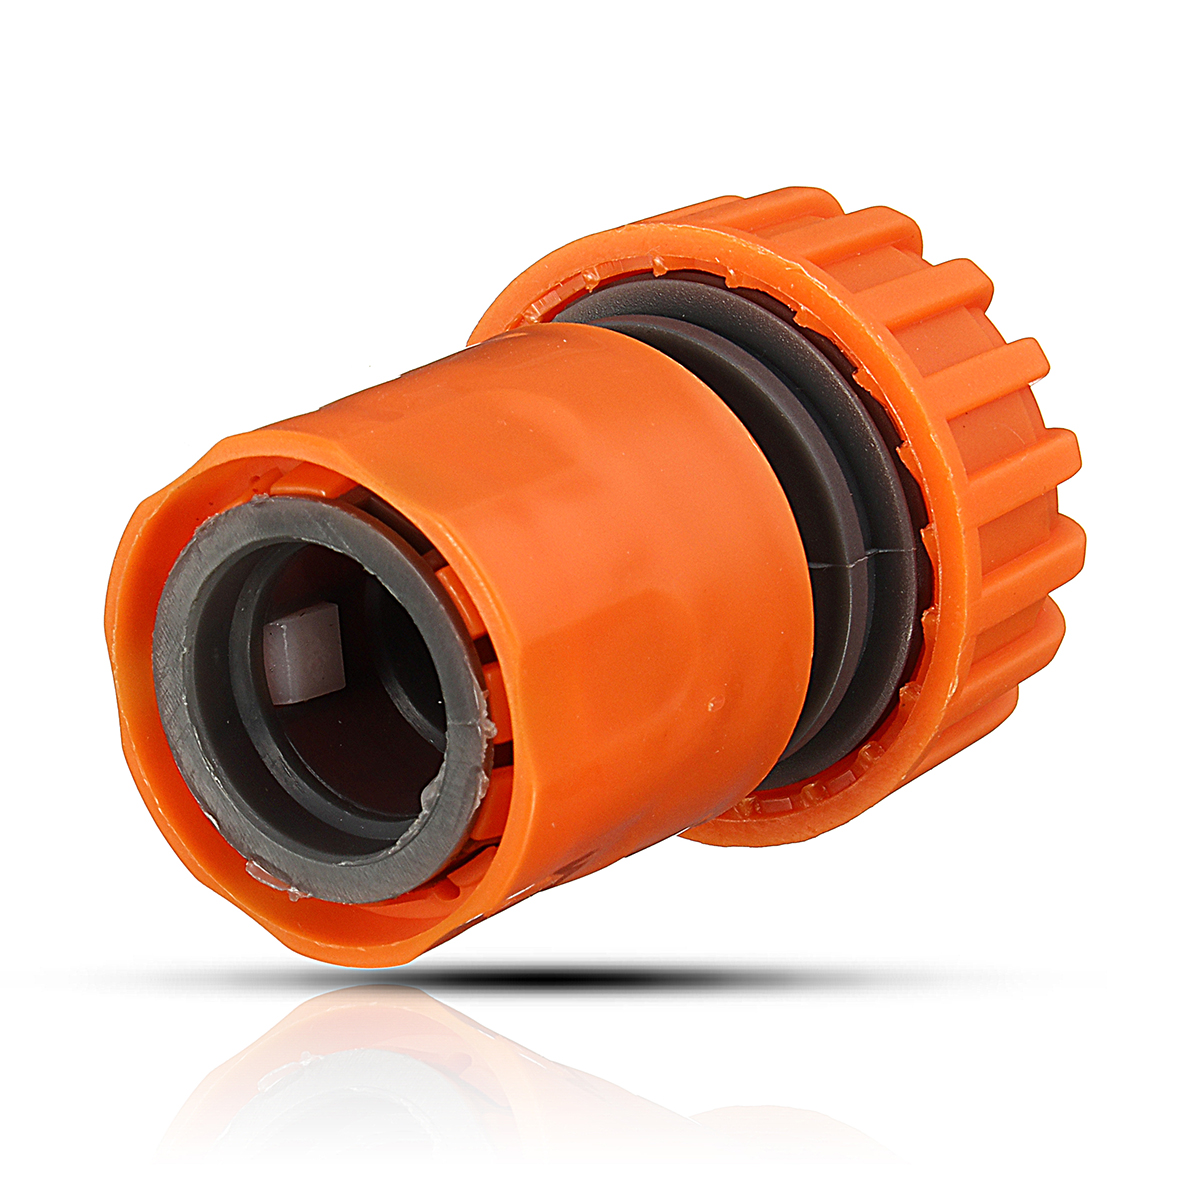 10Pcs 3/4 Plastic Hose Pipe Fitting Quick Garden Water Connector Adapter